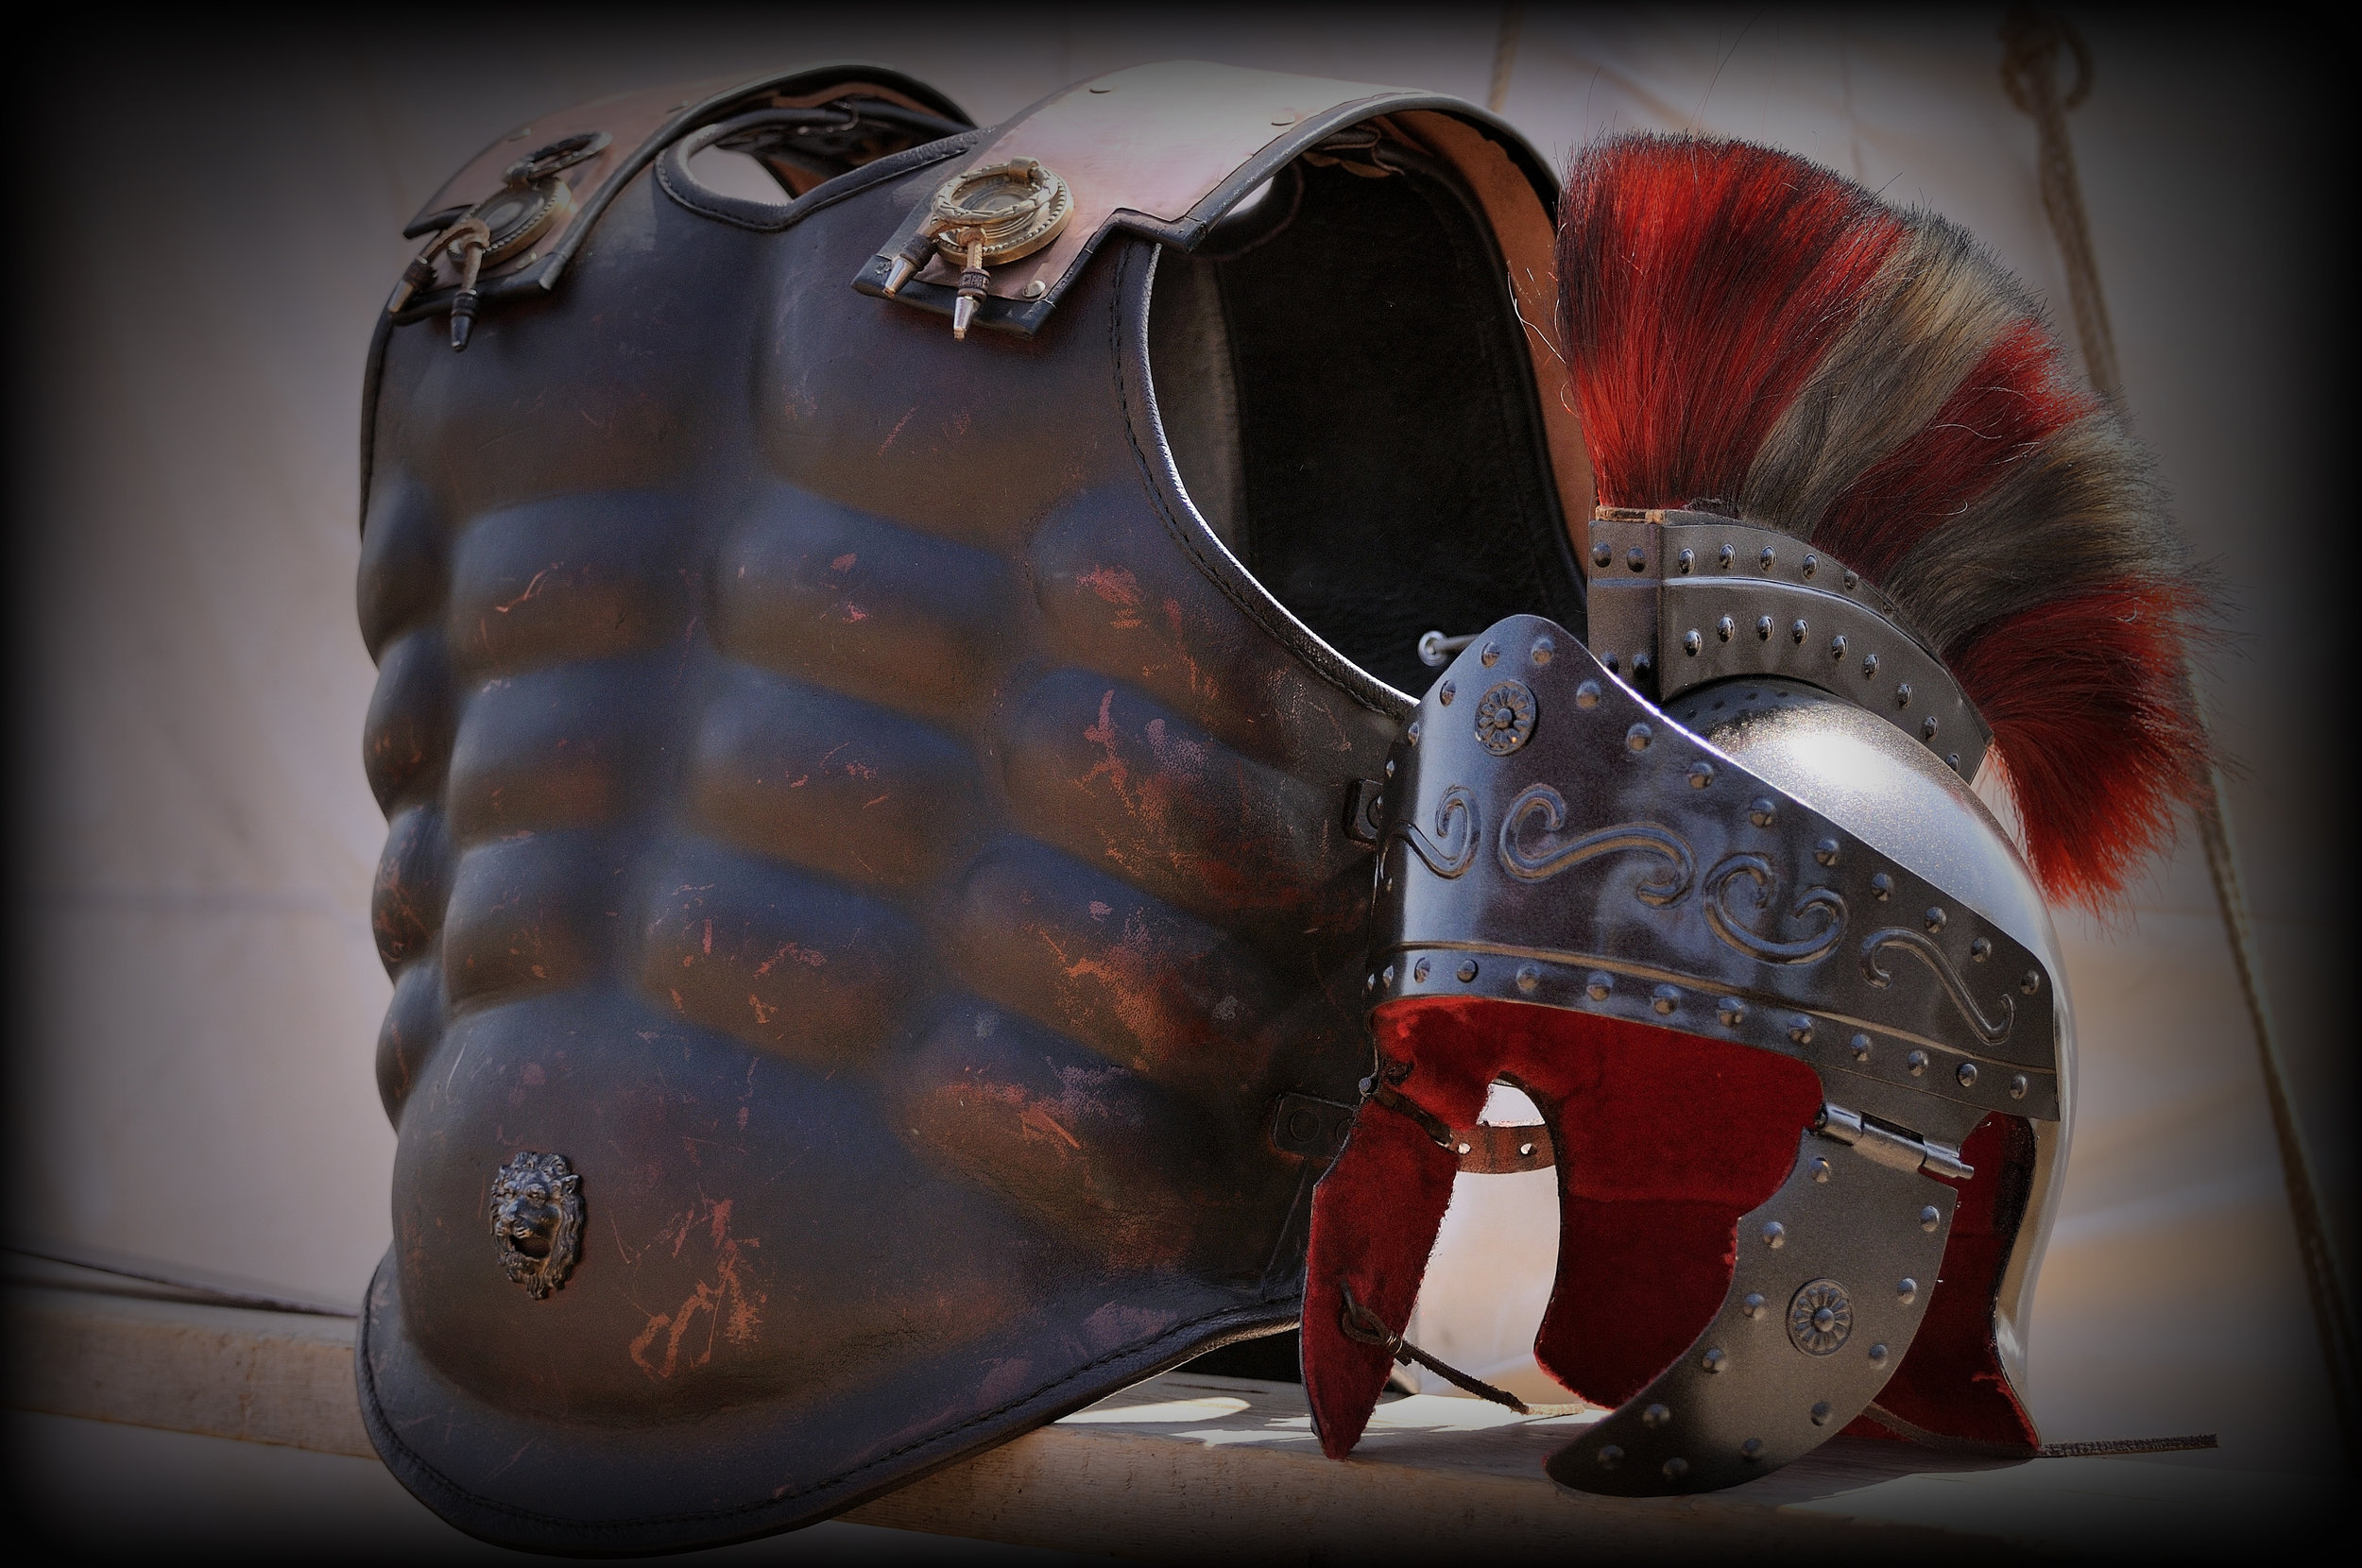 Roman armor awaiting the final battle between the forces of Brutus and Octavius.